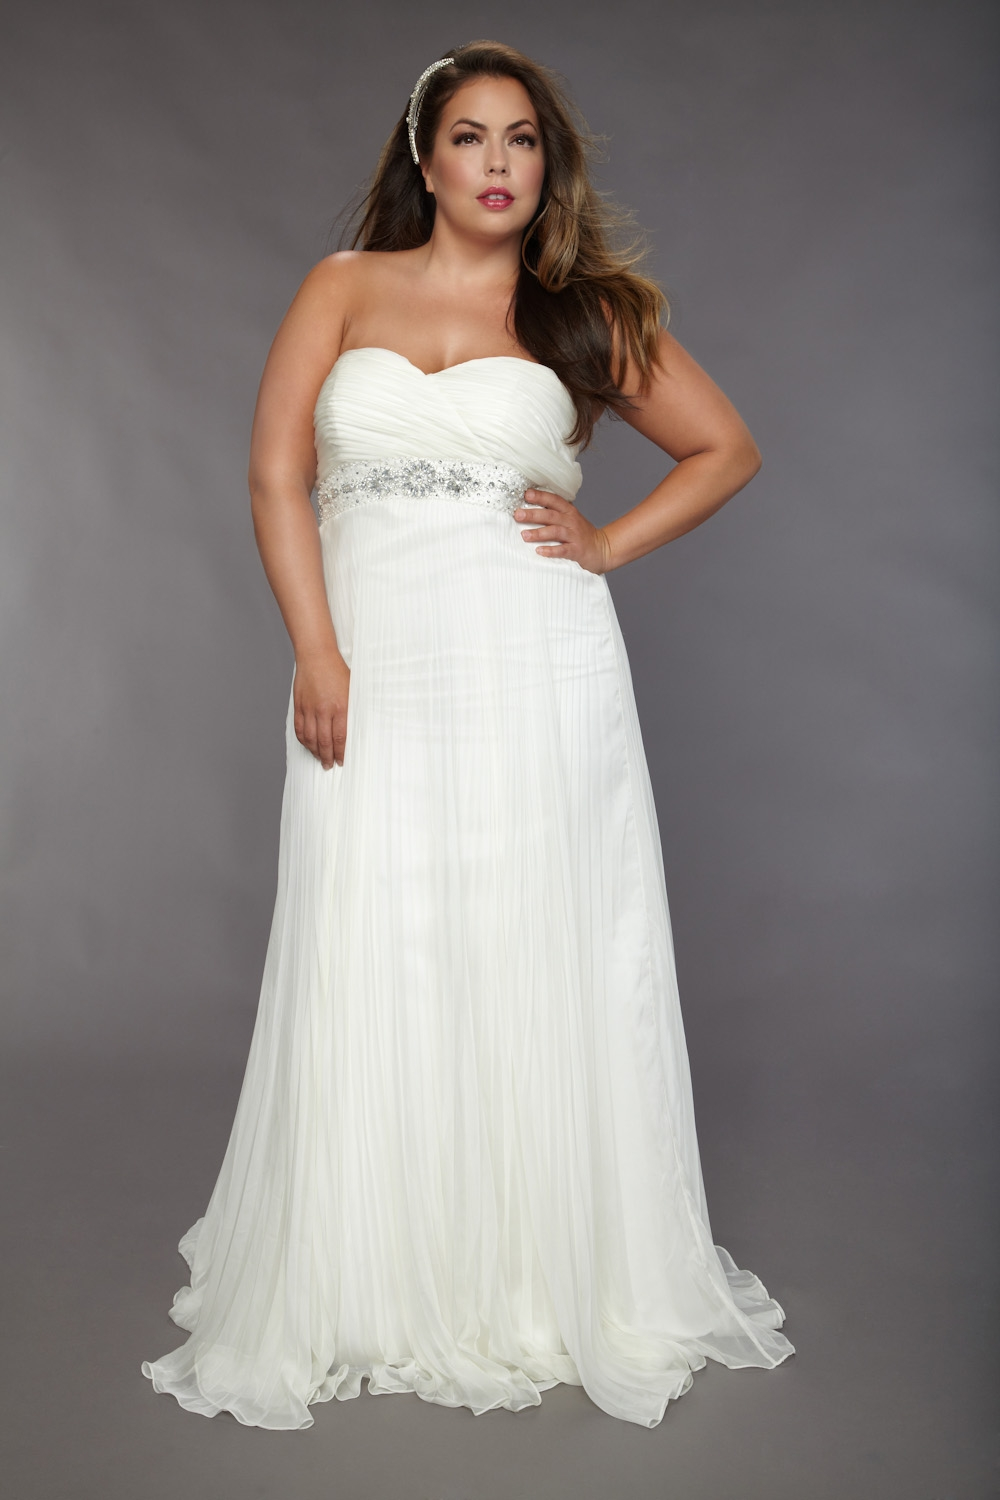 Plus Size Beach Wedding Dresses Picture - plus size wedding dresses for beach wedding